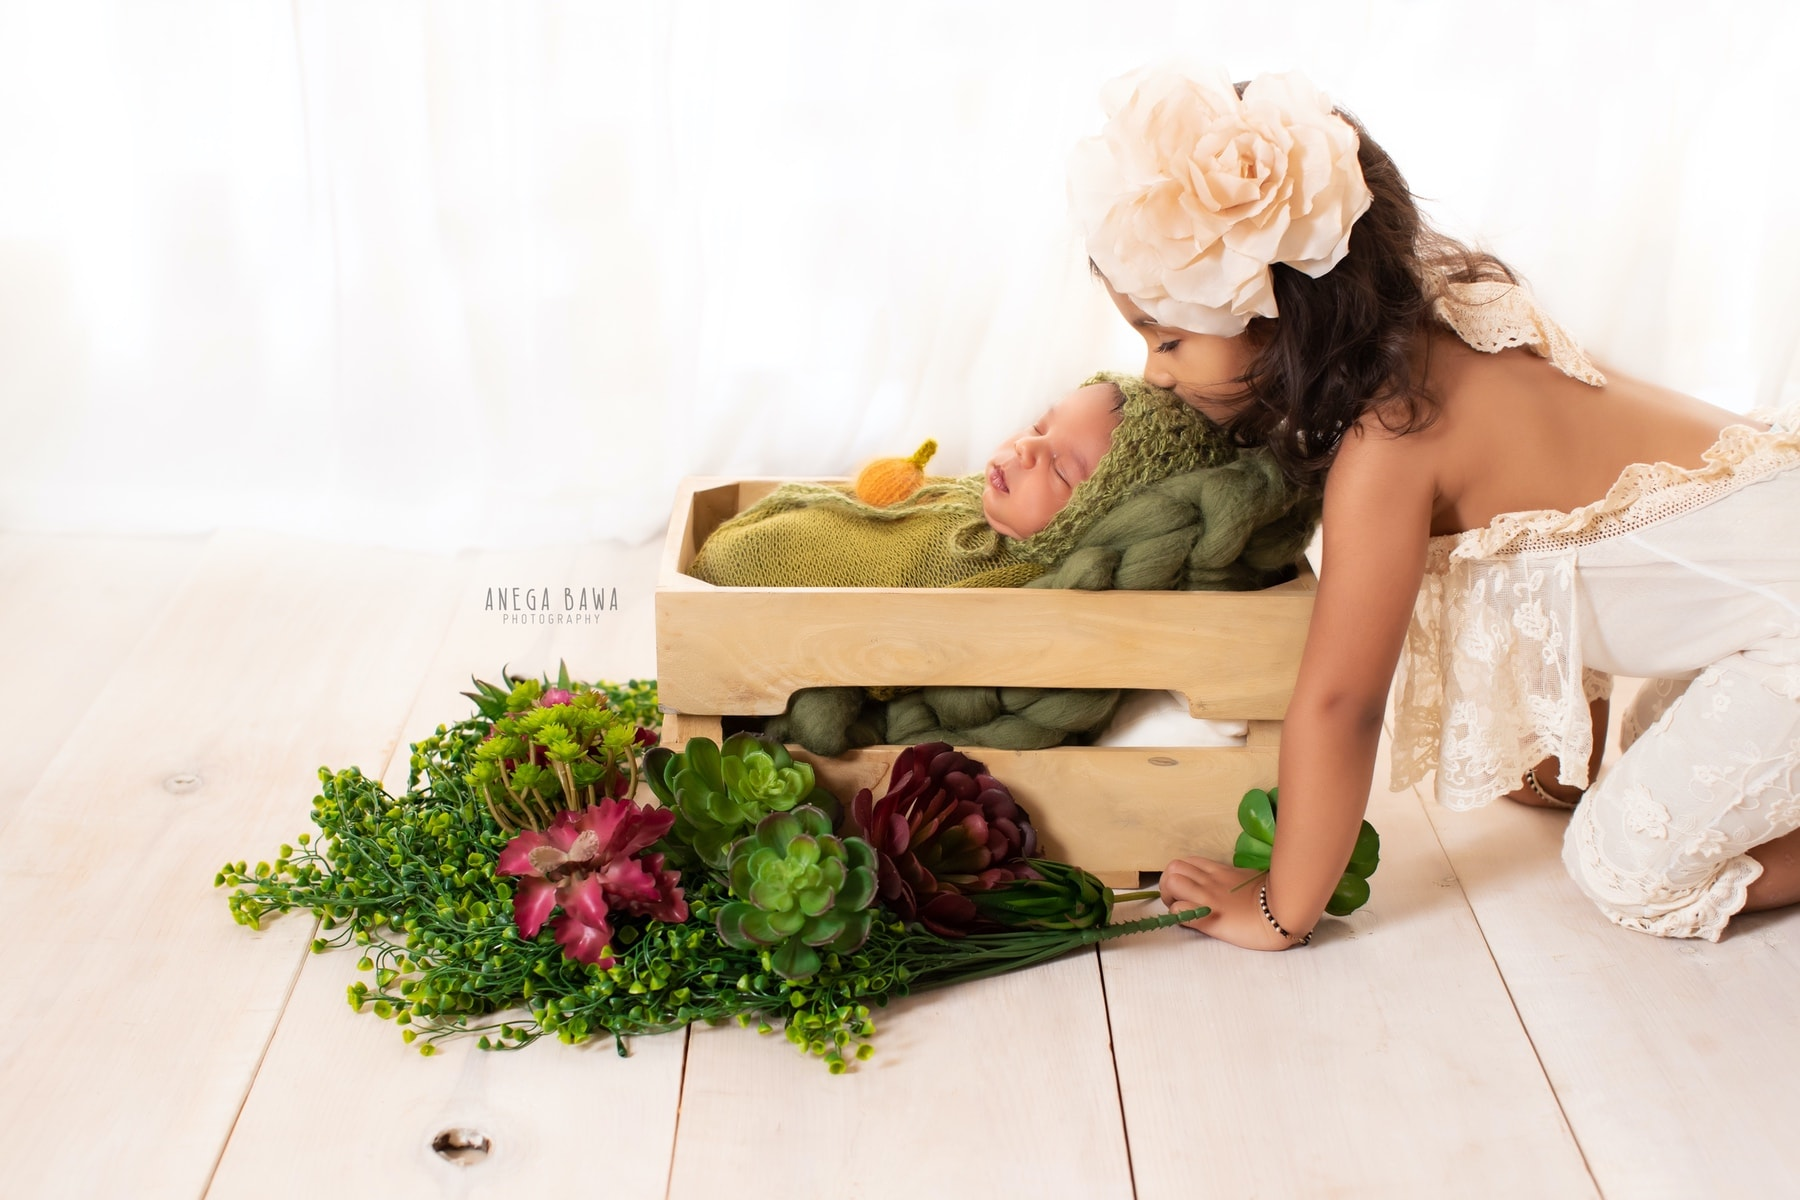 white green floral newborn photography delhi 16 days baby boy photoshoot gurgaon anega bawa